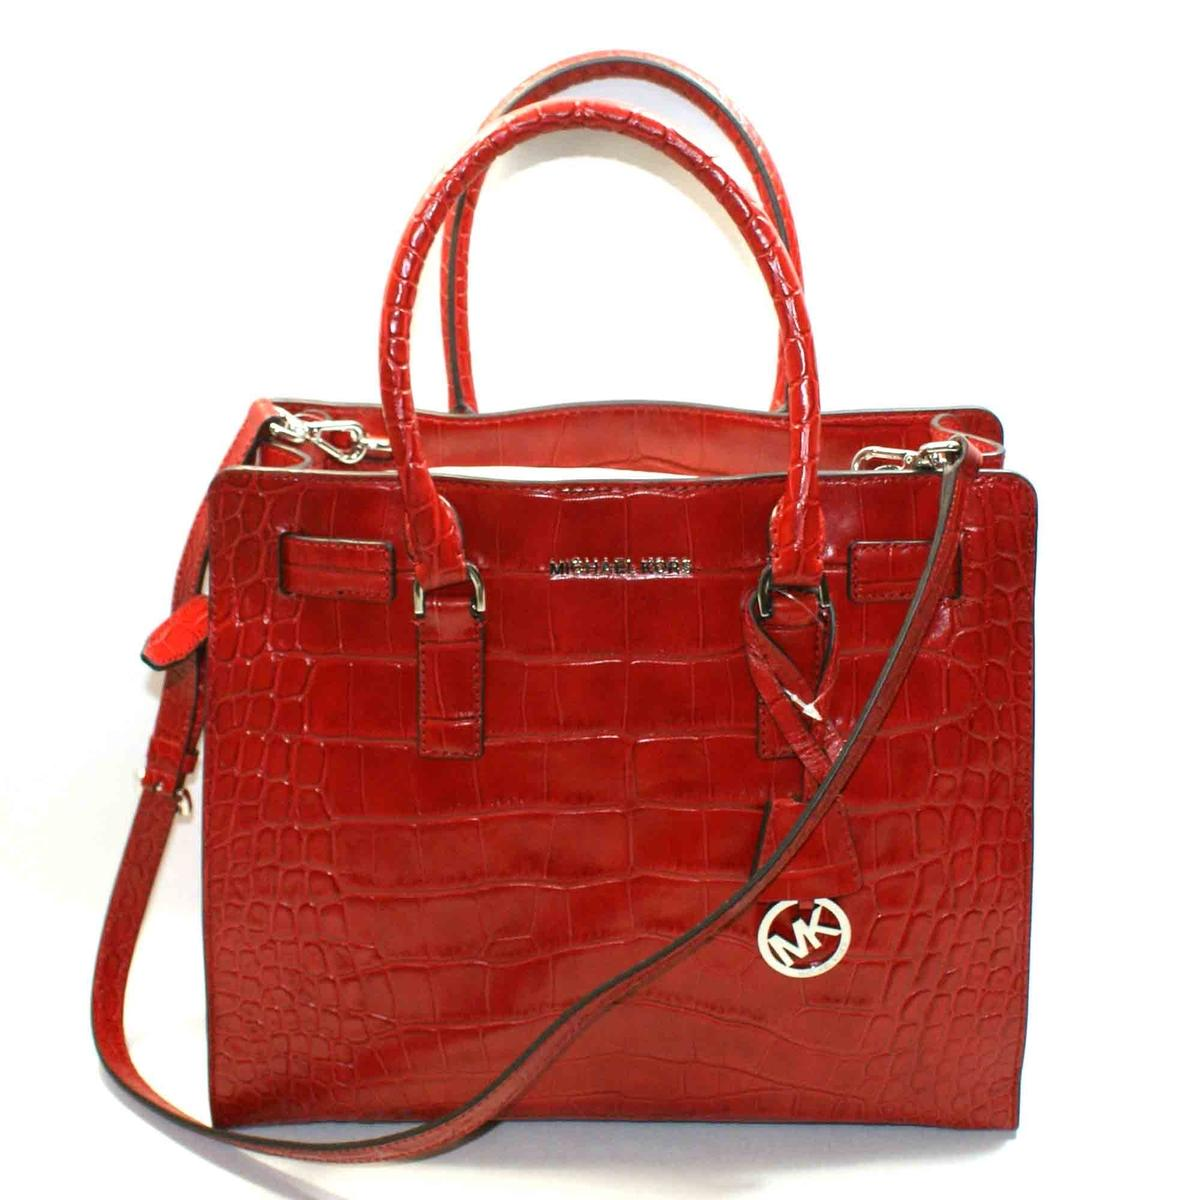 Michael Kors Dillon Large Embossed Leather Tote Shoulder